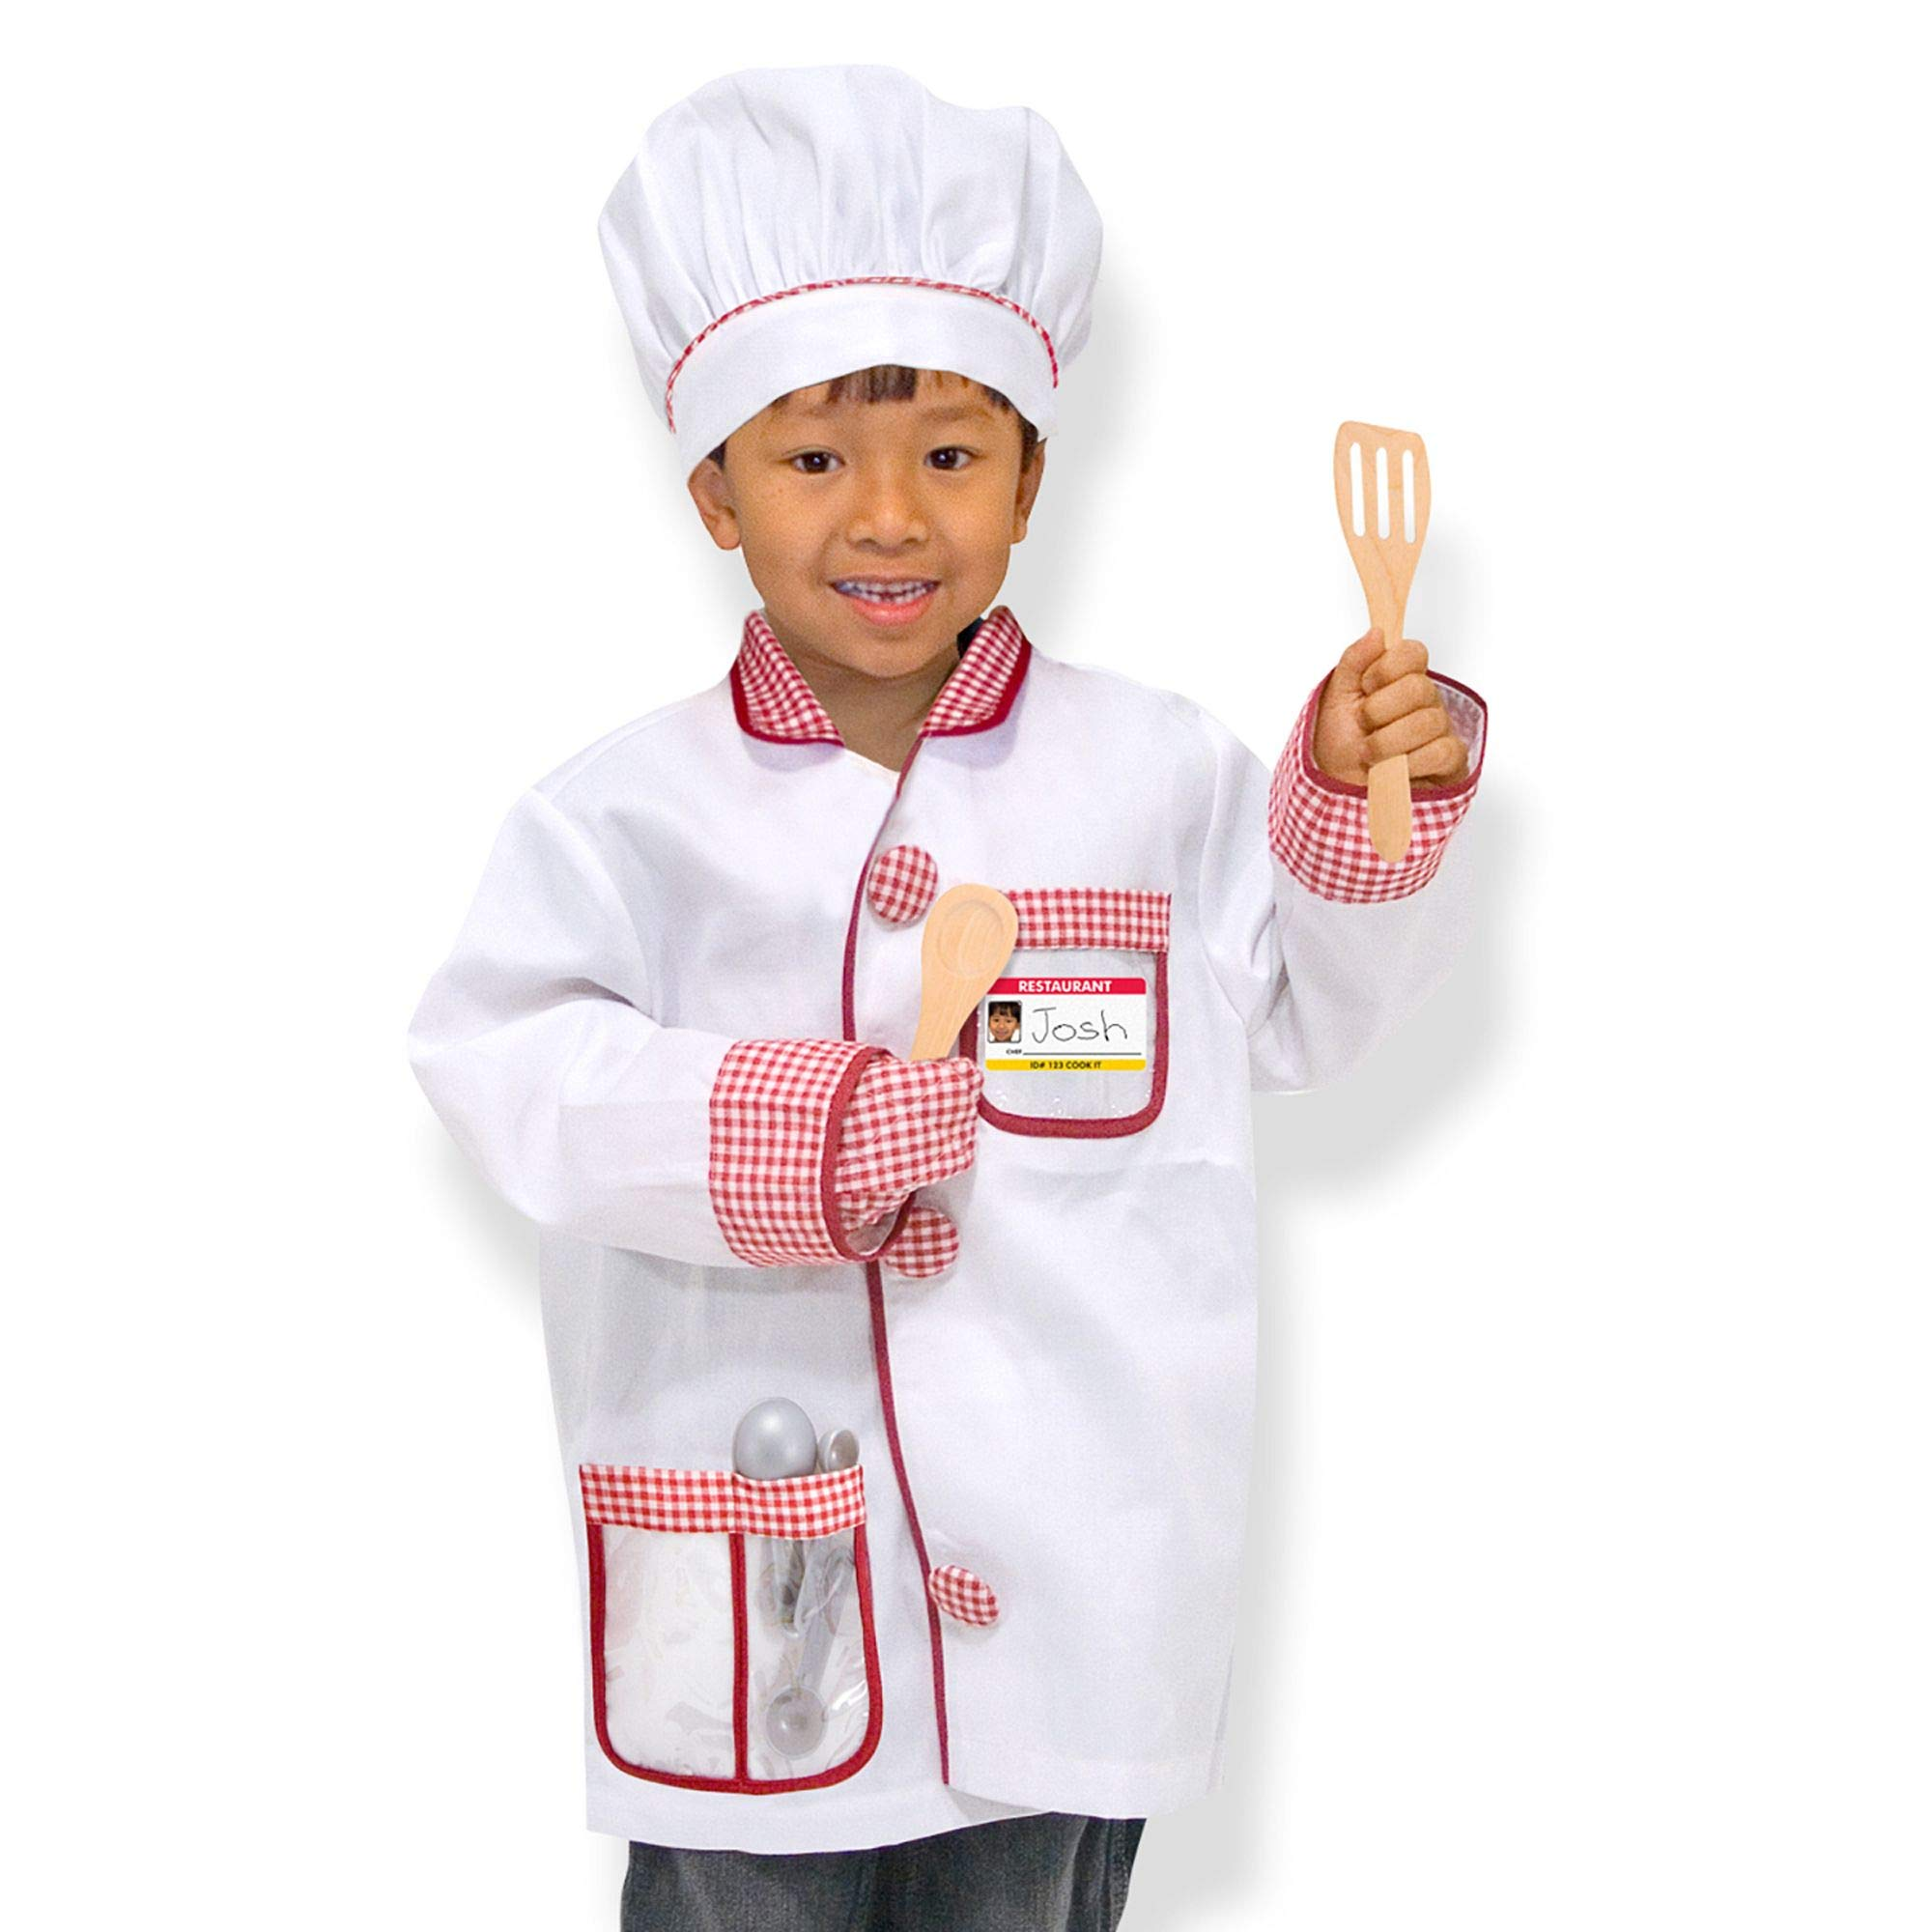 Melissa & Doug Chef Role-Play Costume Set (Pretend Play, Materials, Machine-Washable, 17.5'' H x 24'' W x 0.75'' L)